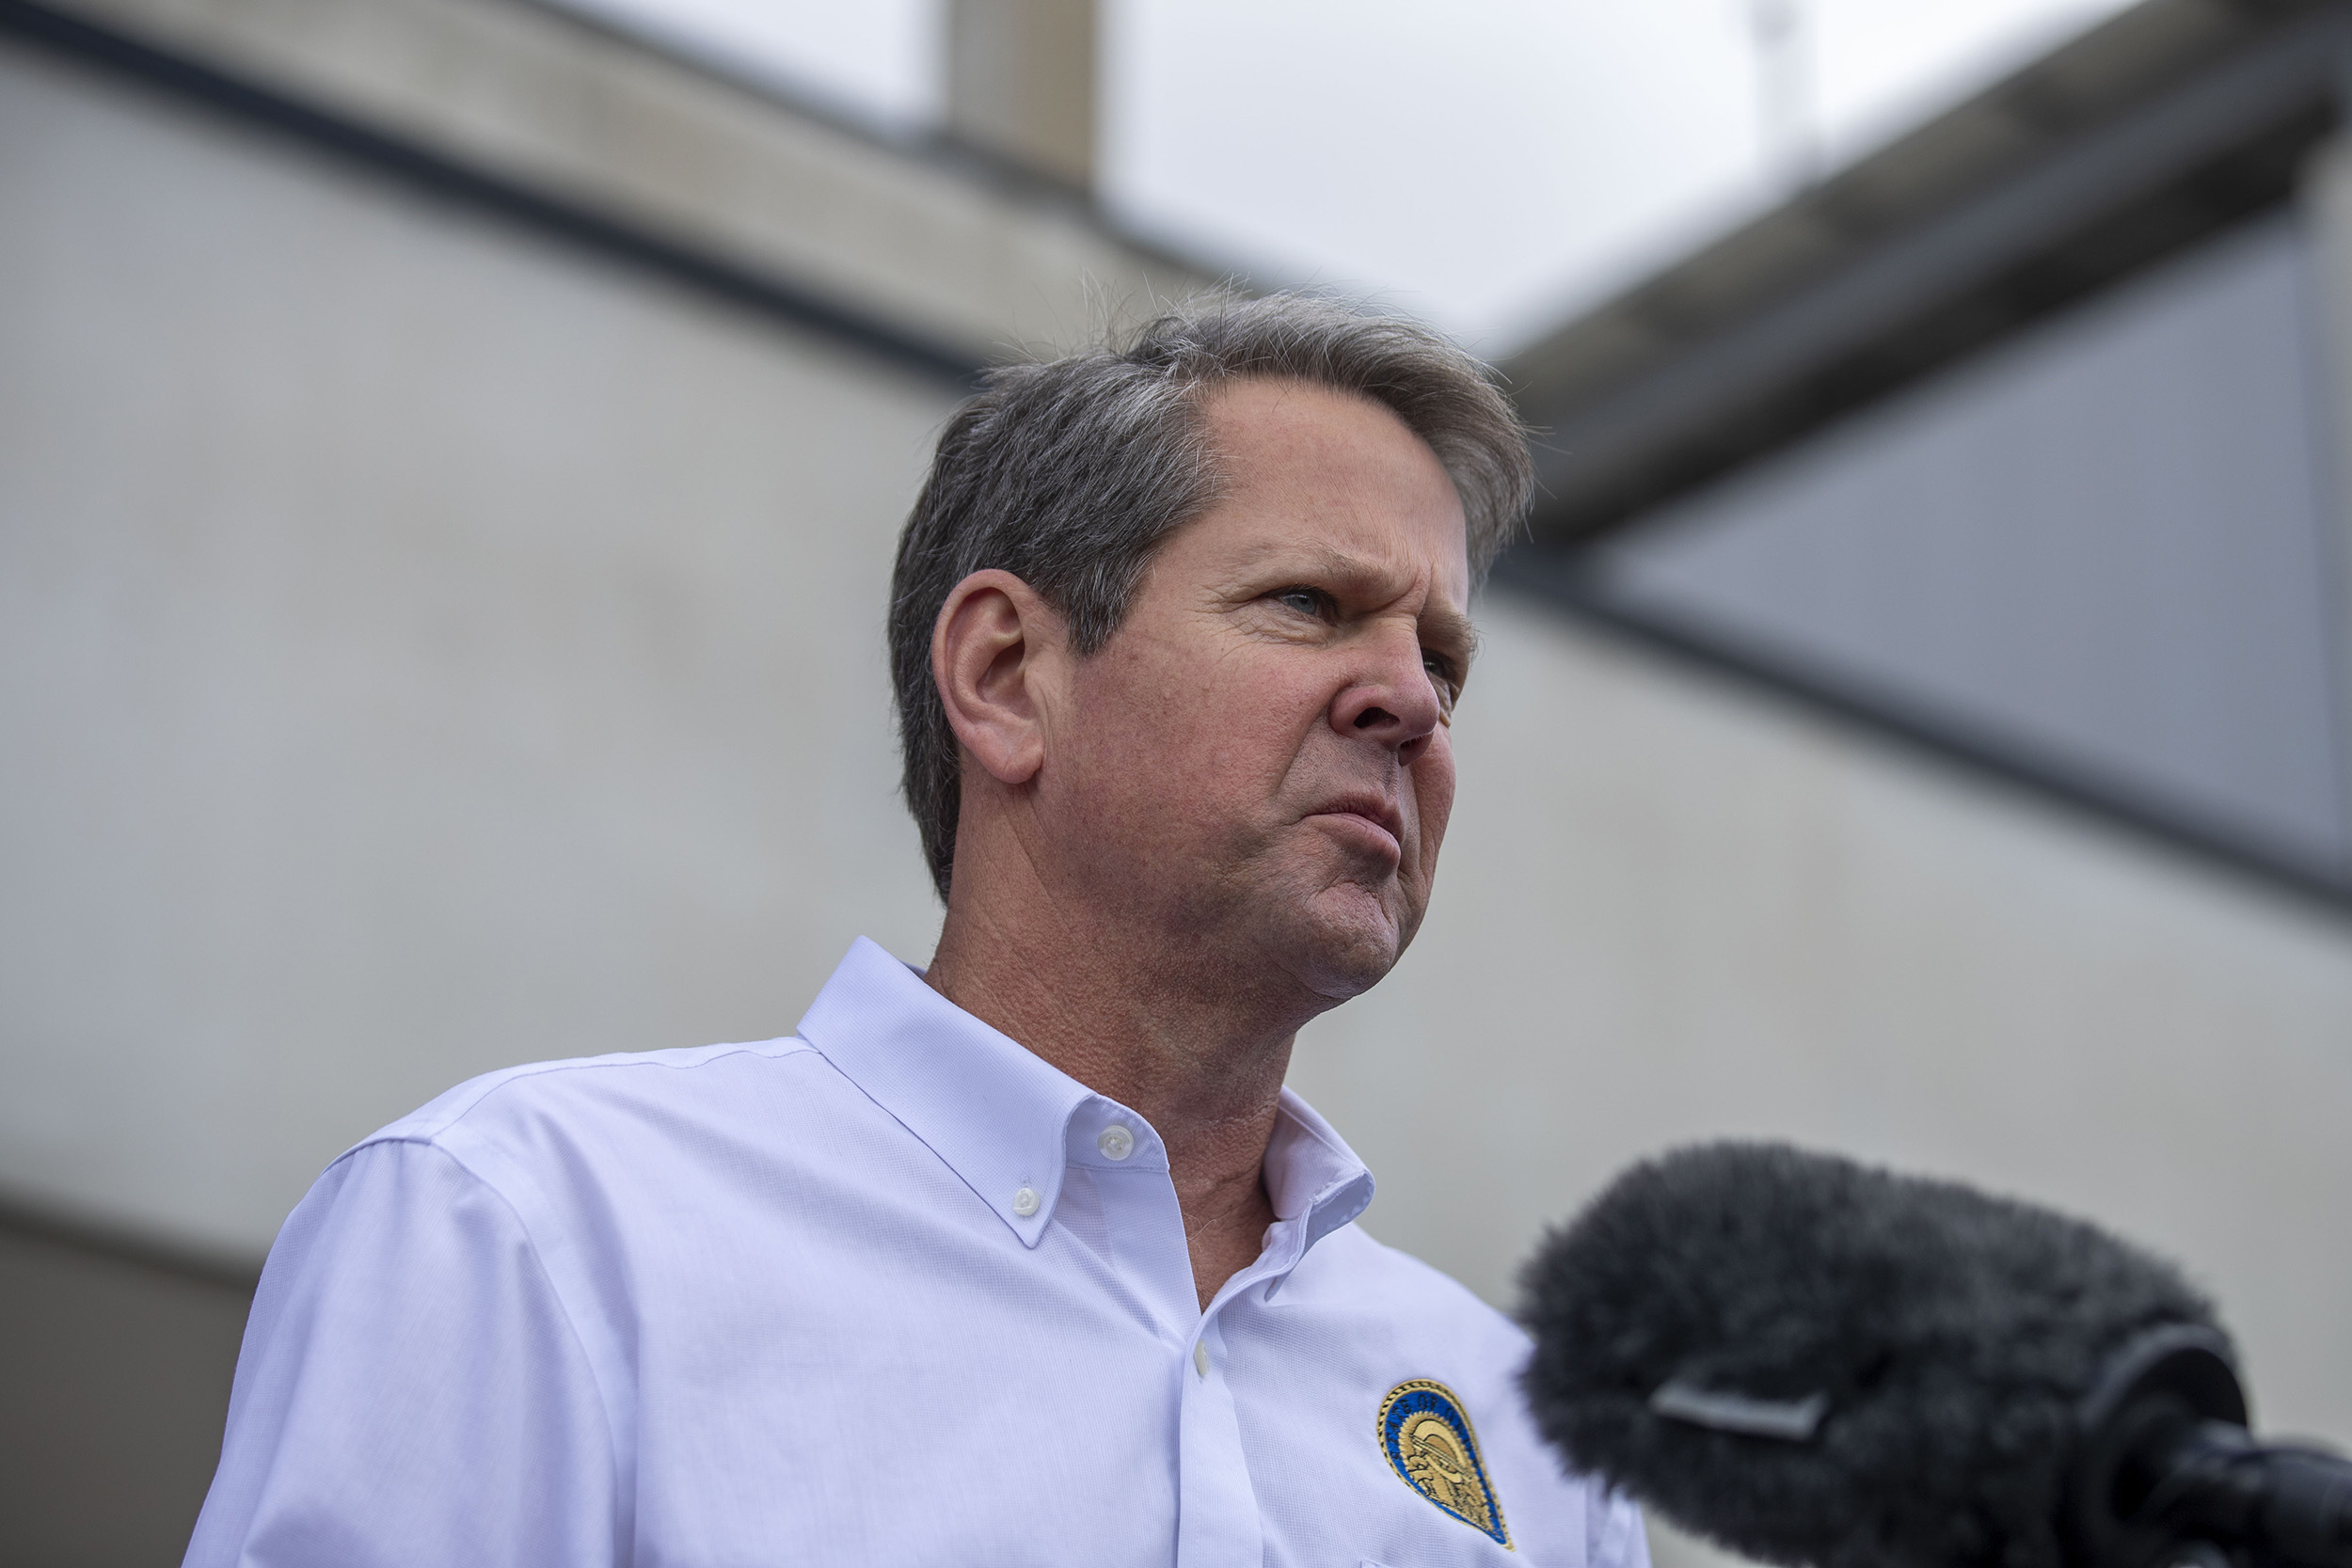 Governor Brian Kemp makes a statement and answers questions from the media following a tour of Fieldale Farms while visiting Gainesville, on Friday, May 15.